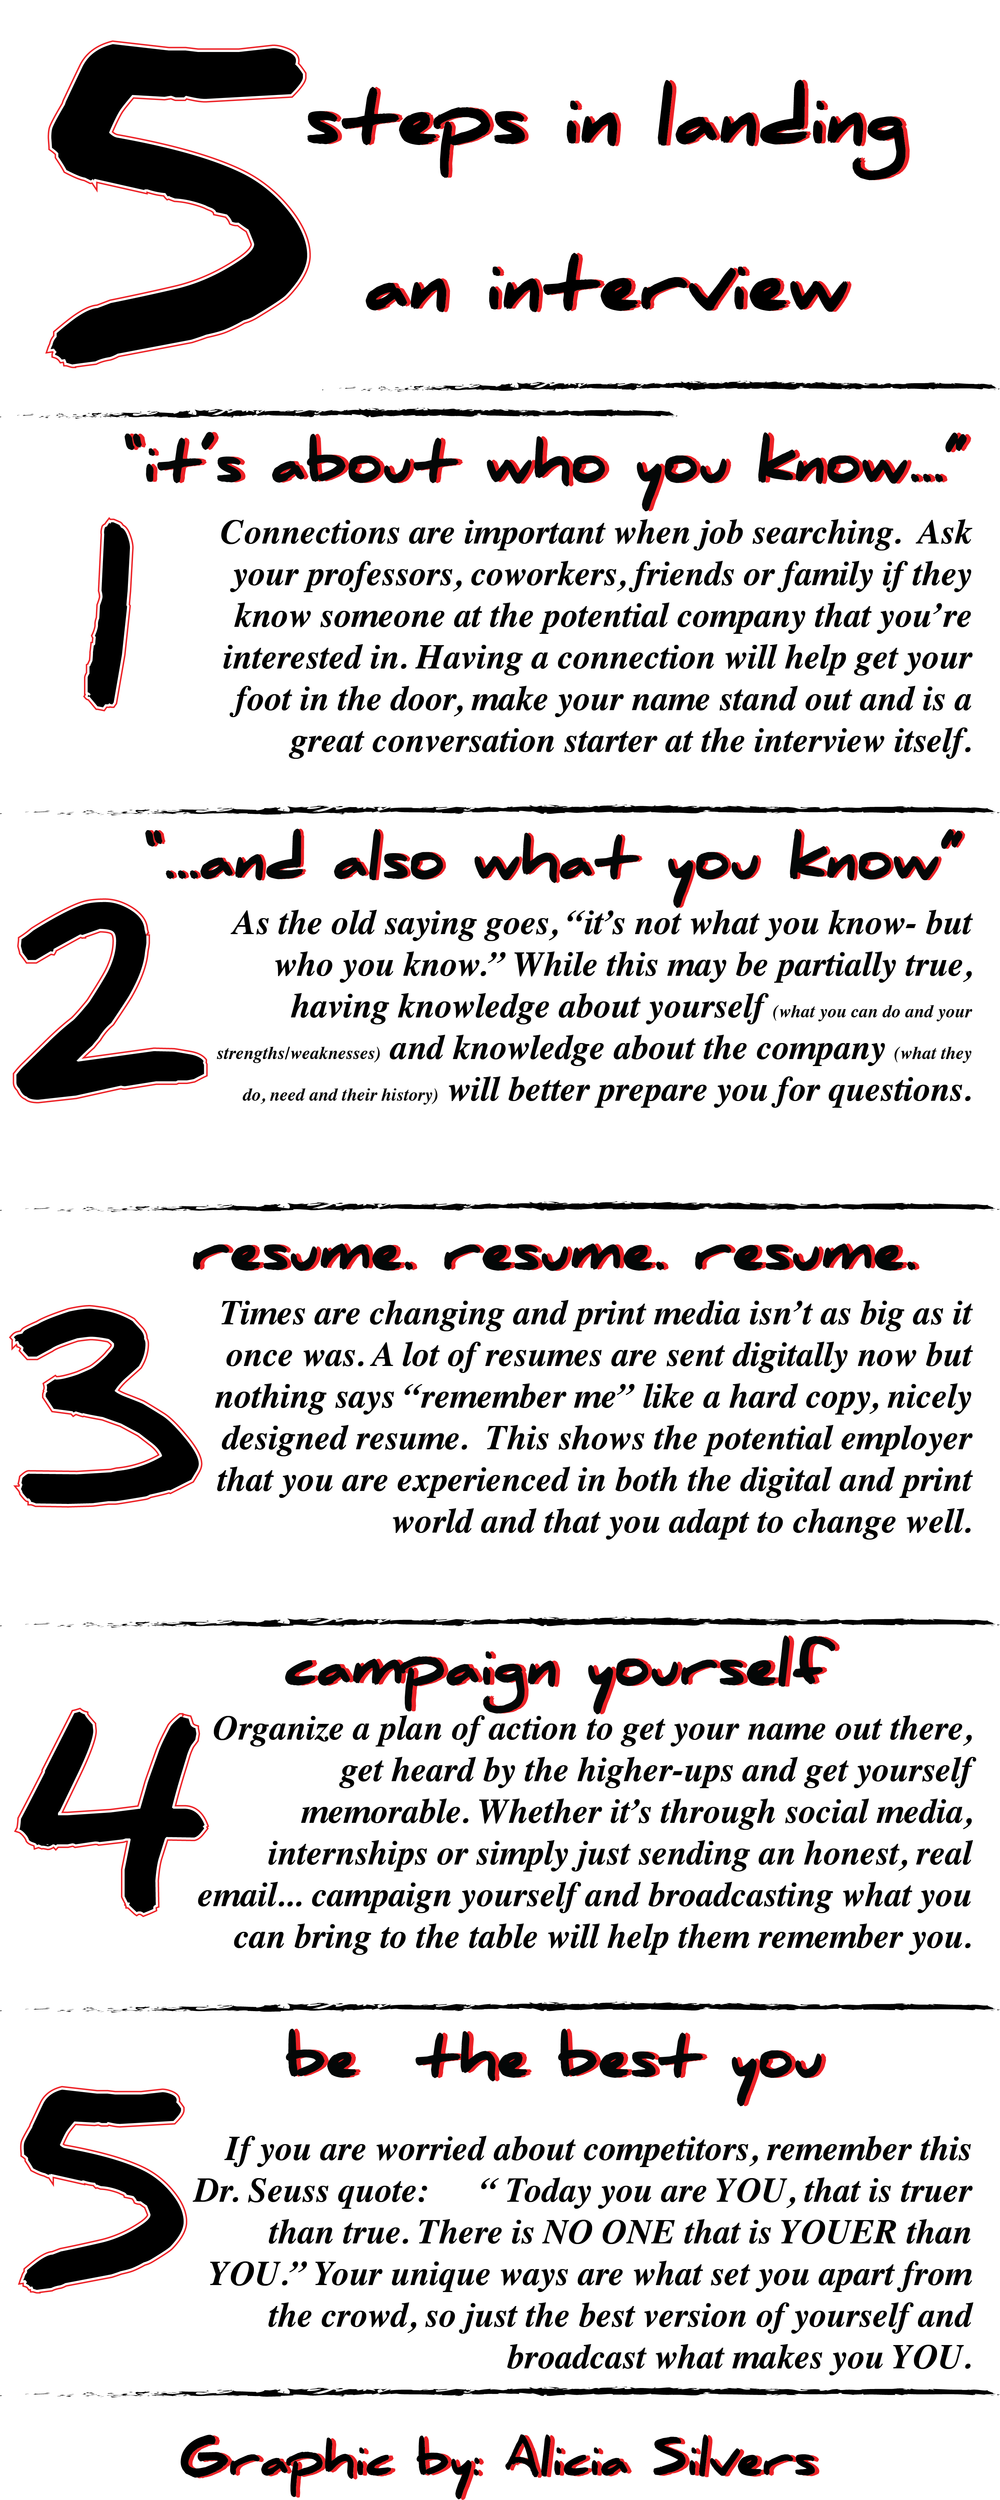 5 steps-02-02.png